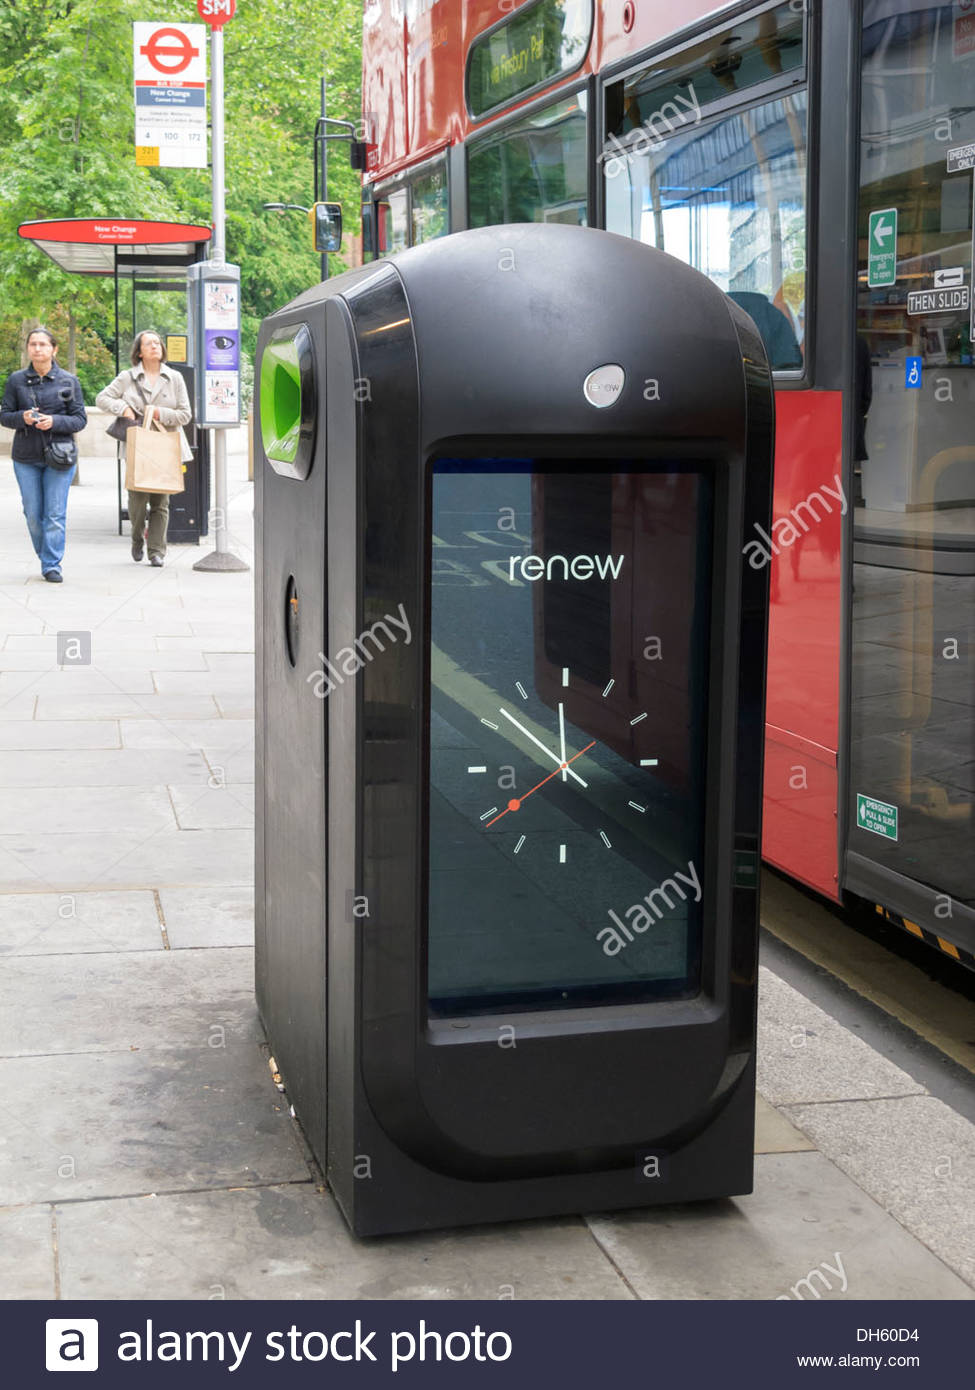 Litter Bin Street Advertising London England Stock Photo Royalty - Street advertising